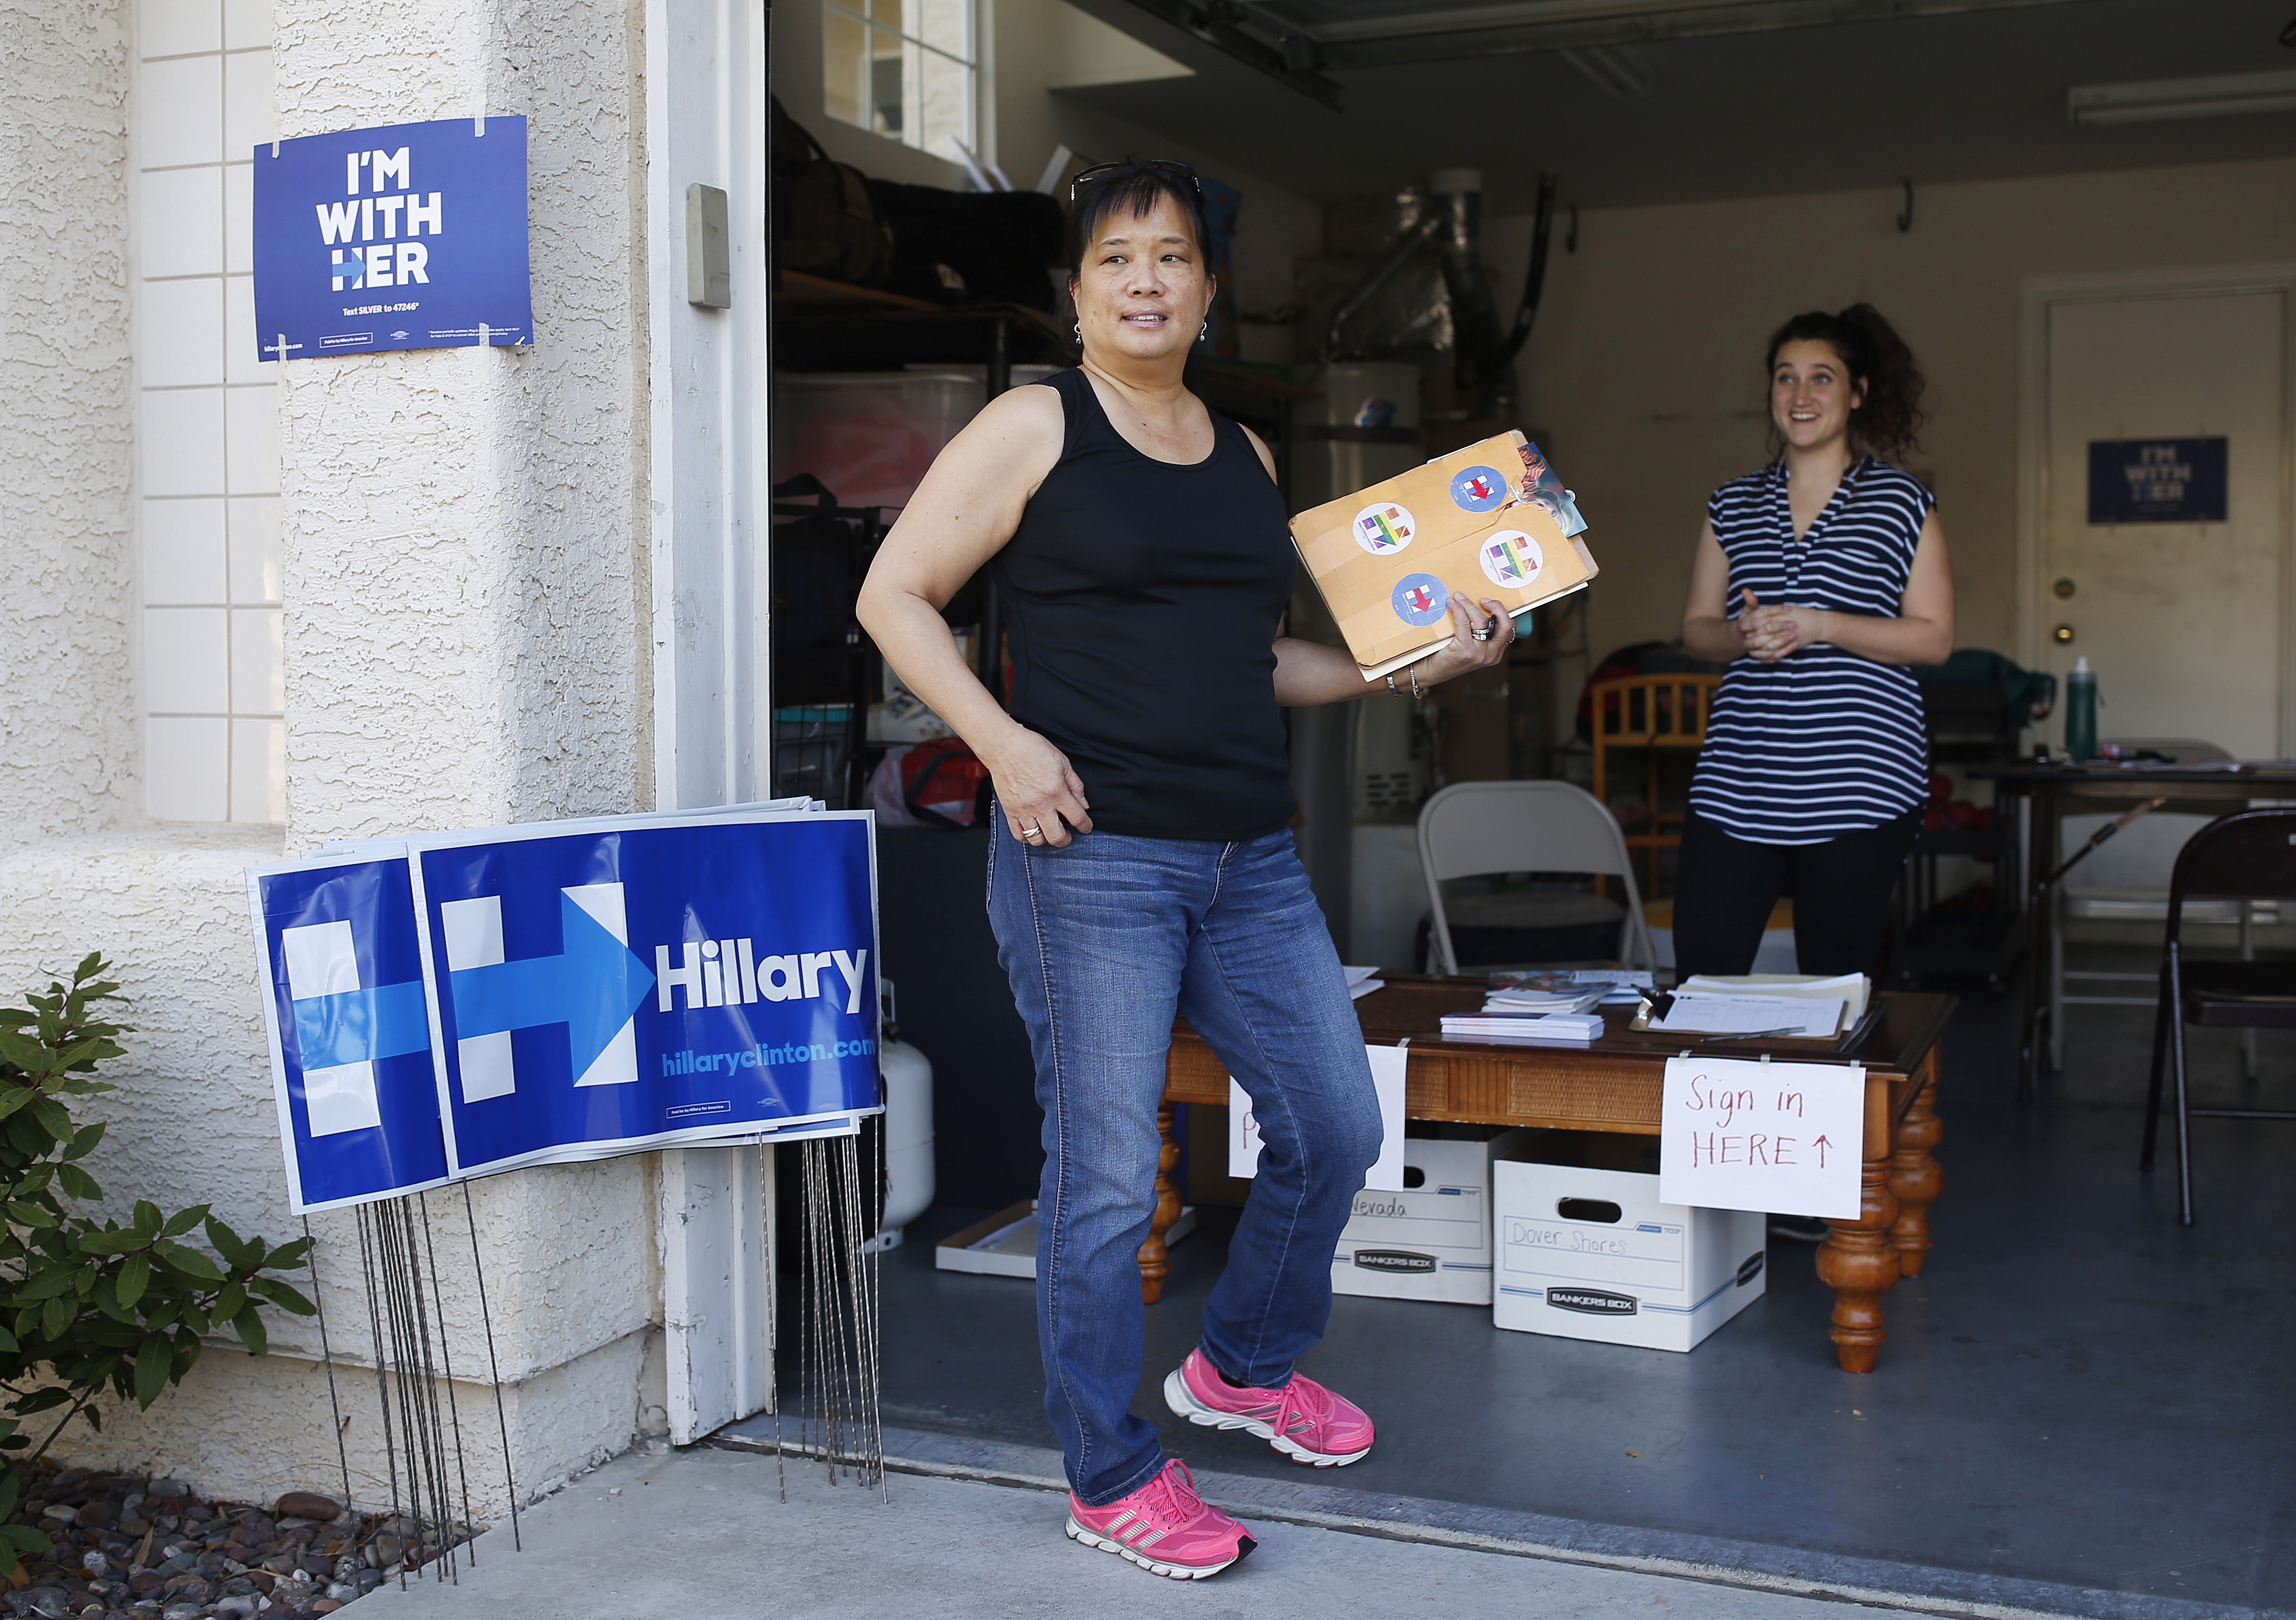 Cynthia Ameli, center, a Chinese-American, picks up materials from Sarah Gibson before heading out to canvass for presidential candidate Hillary Clinton in Las Vegas, Feb. 12, 2016.